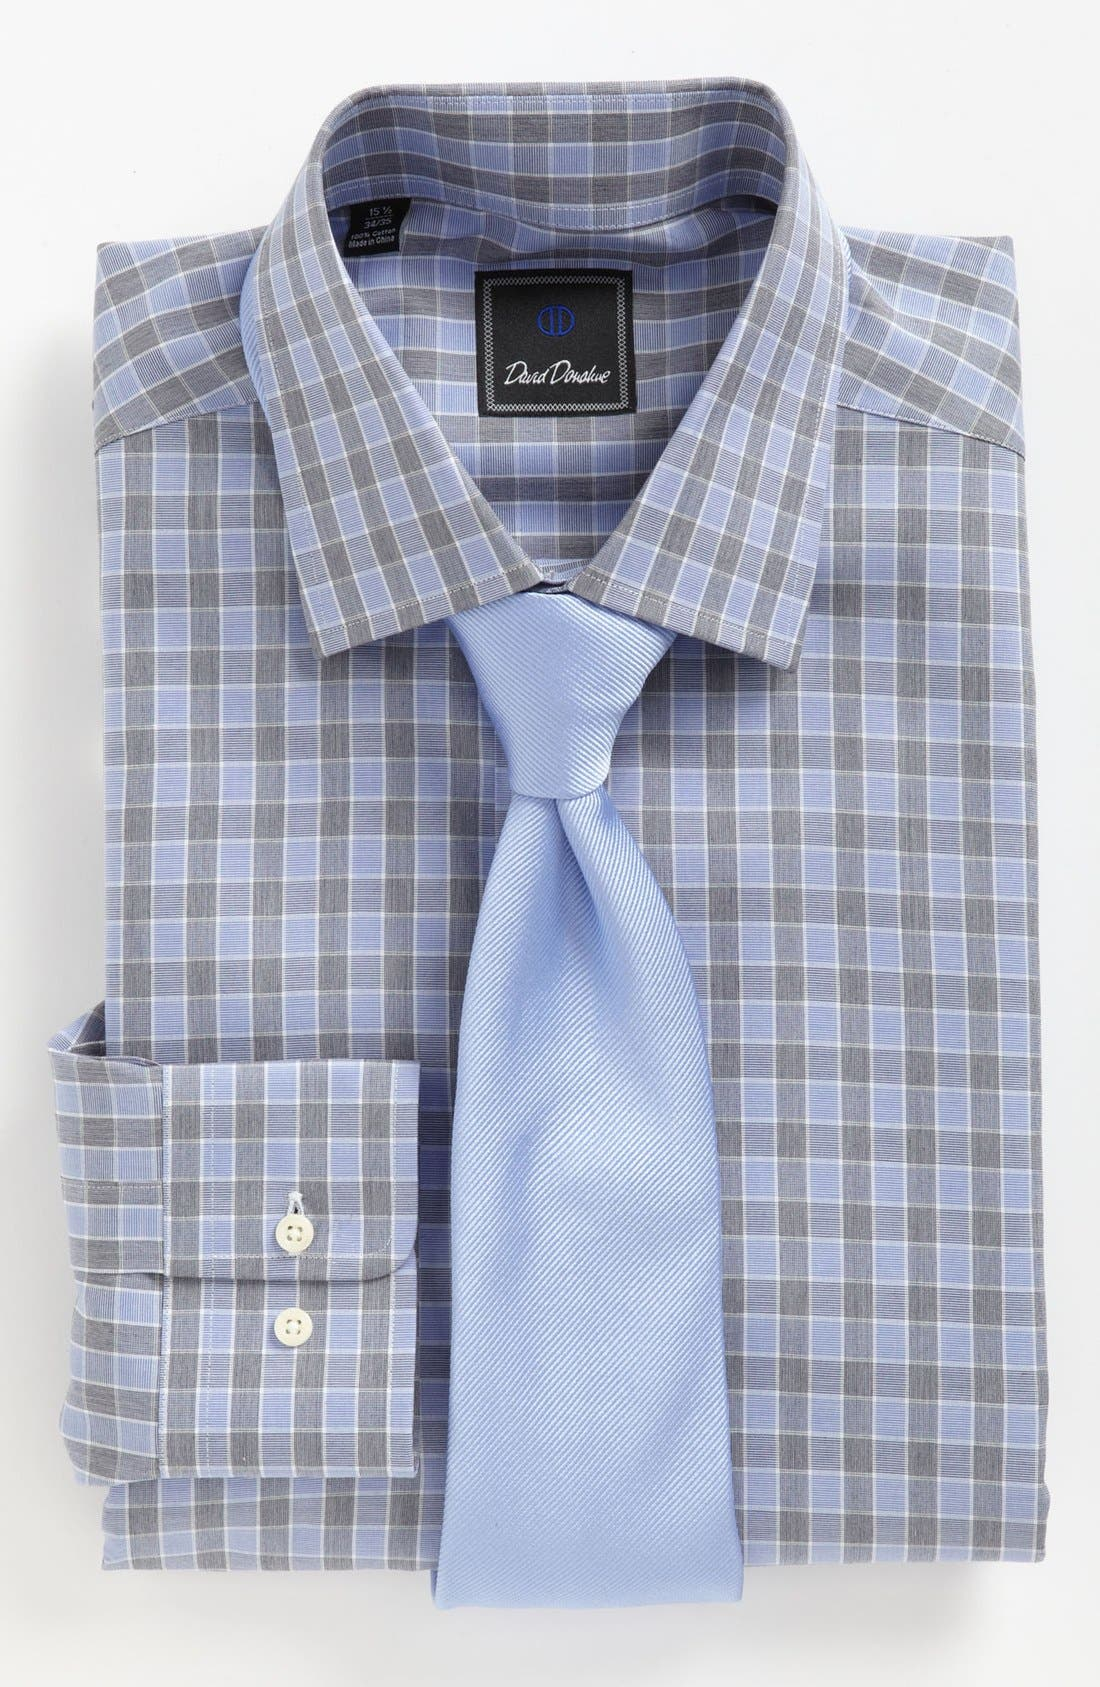 DAVID DONAHUE,                             Regular Fit Dress Shirt,                             Alternate thumbnail 2, color,                             423